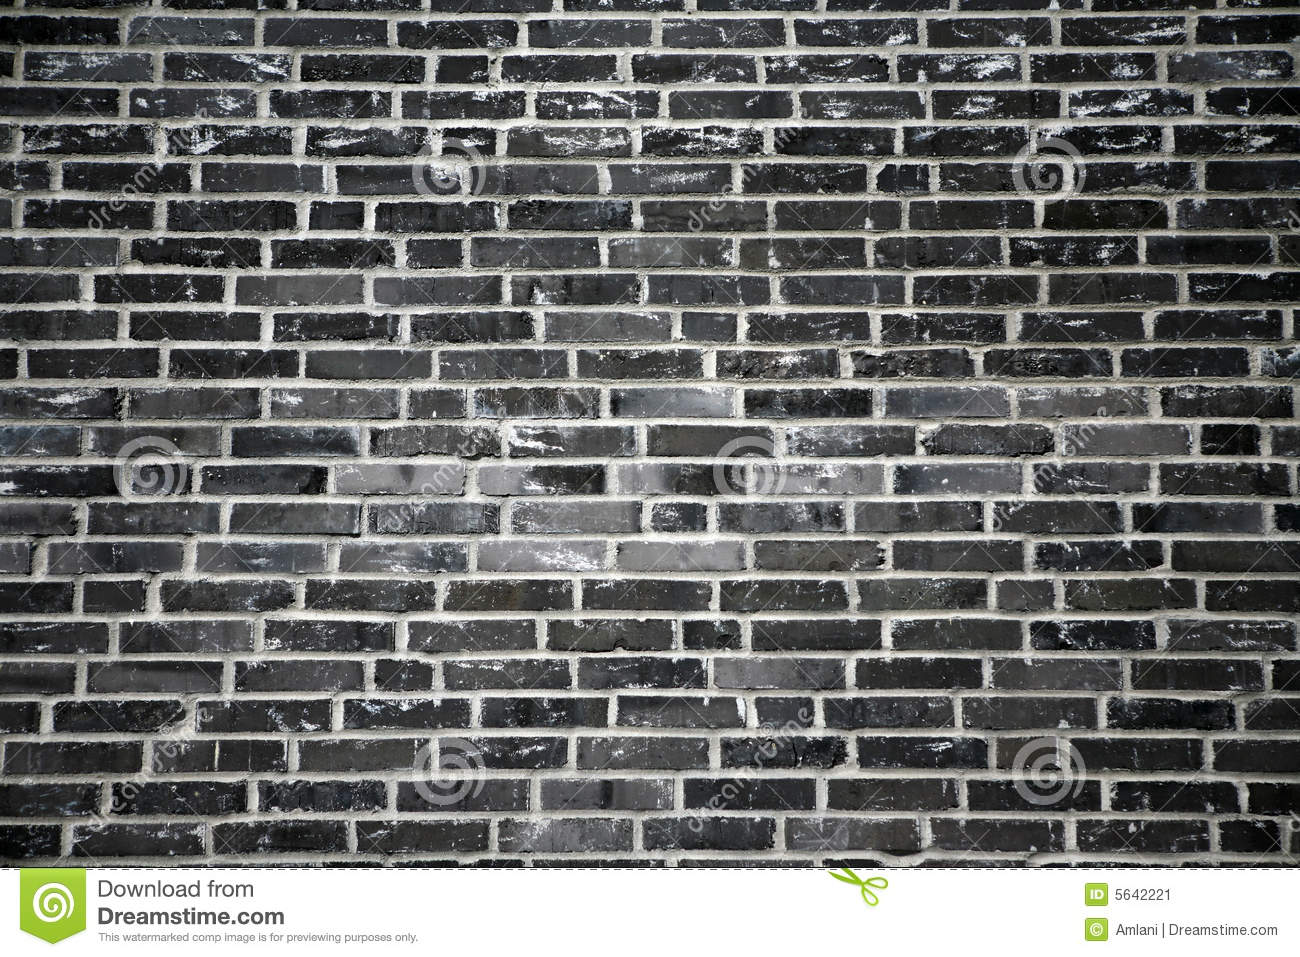 black brick wall   it looks almost like a black and white photograph